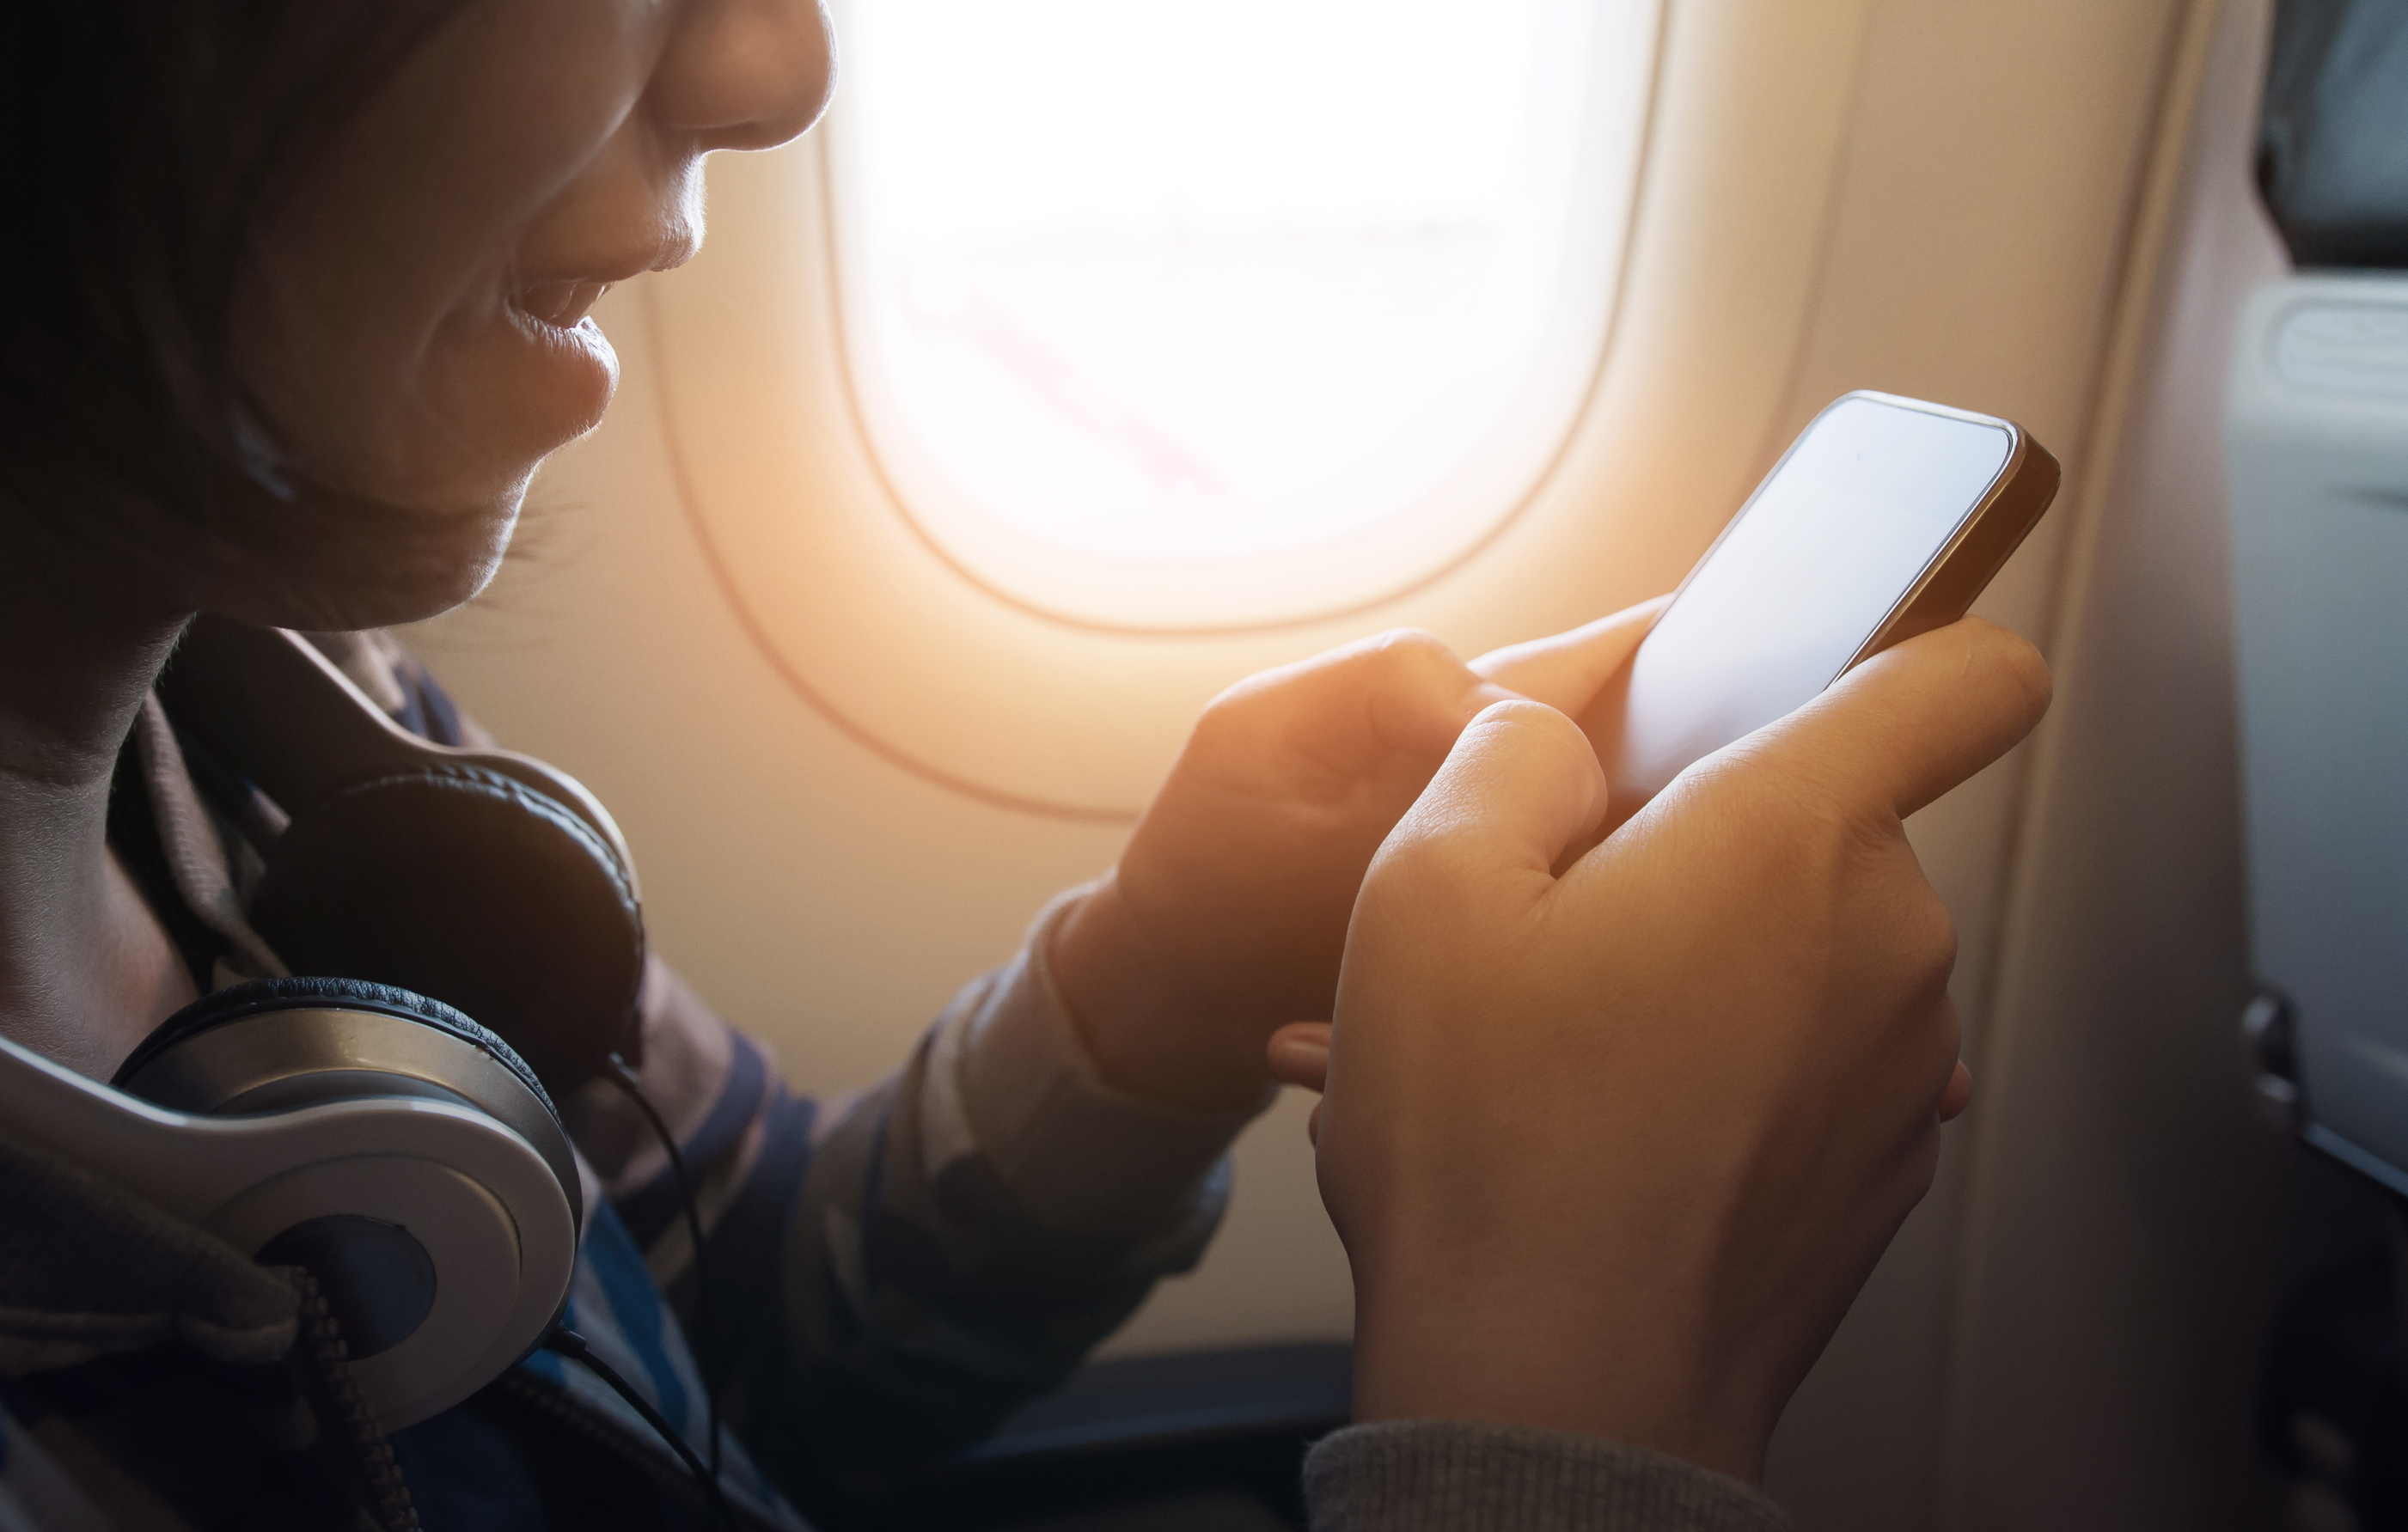 Woman-airplane-window-seat-phone.jpg?mtime=20180710124935#asset:102445